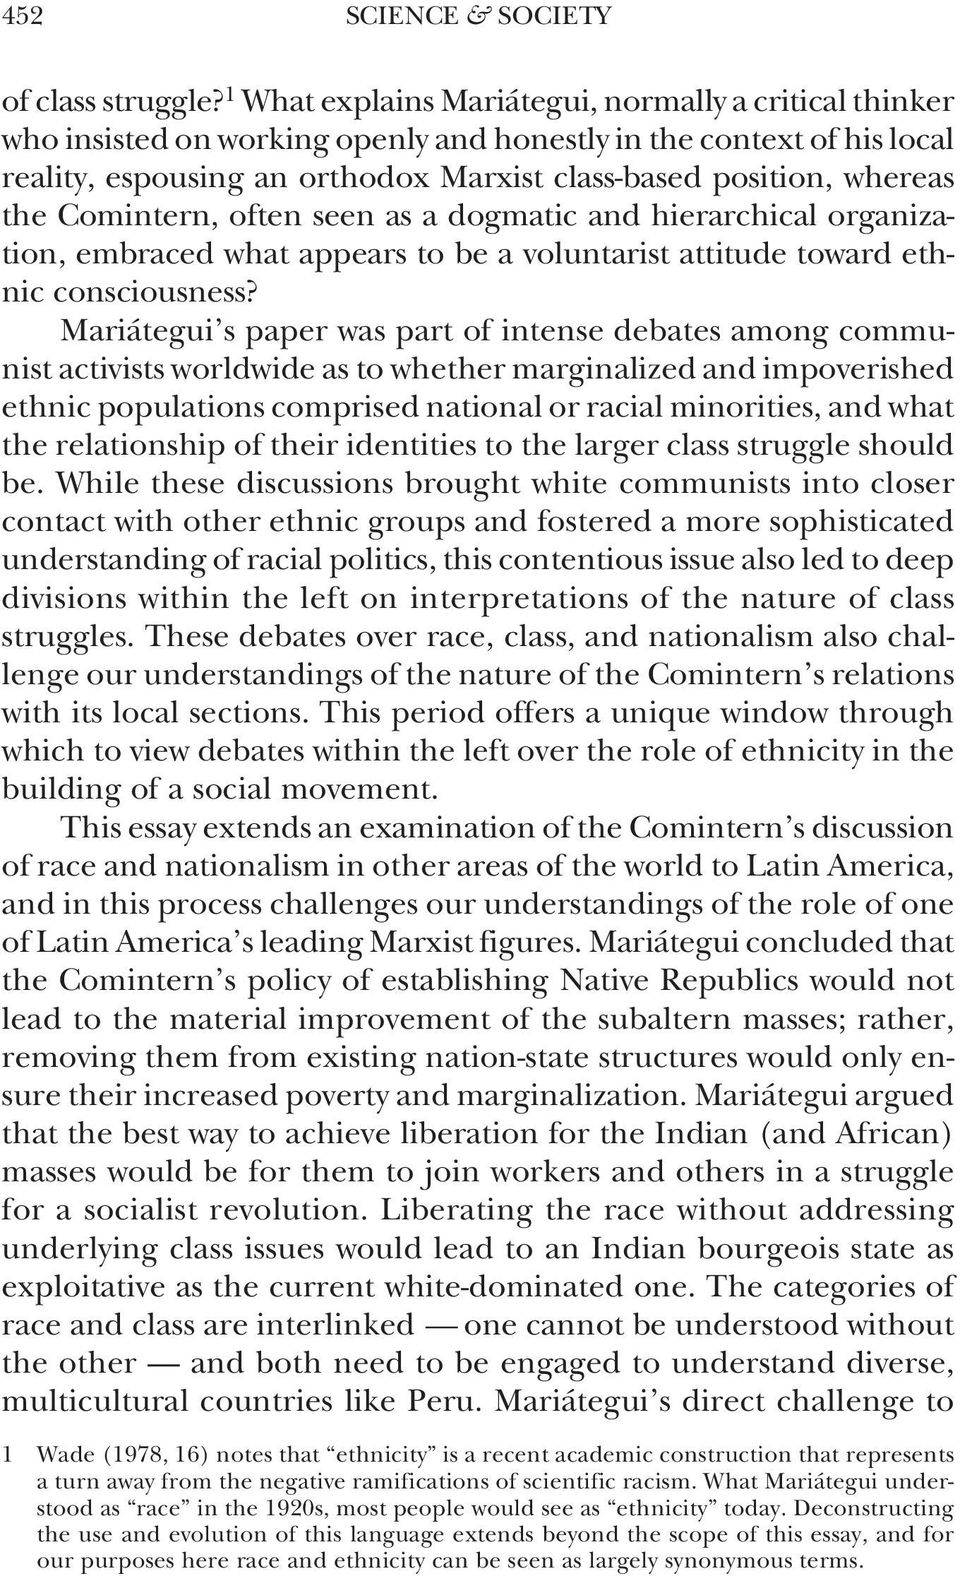 the Comintern, often seen as a dogmatic and hierarchical organization, embraced what appears to be a voluntarist attitude toward ethnic consciousness?